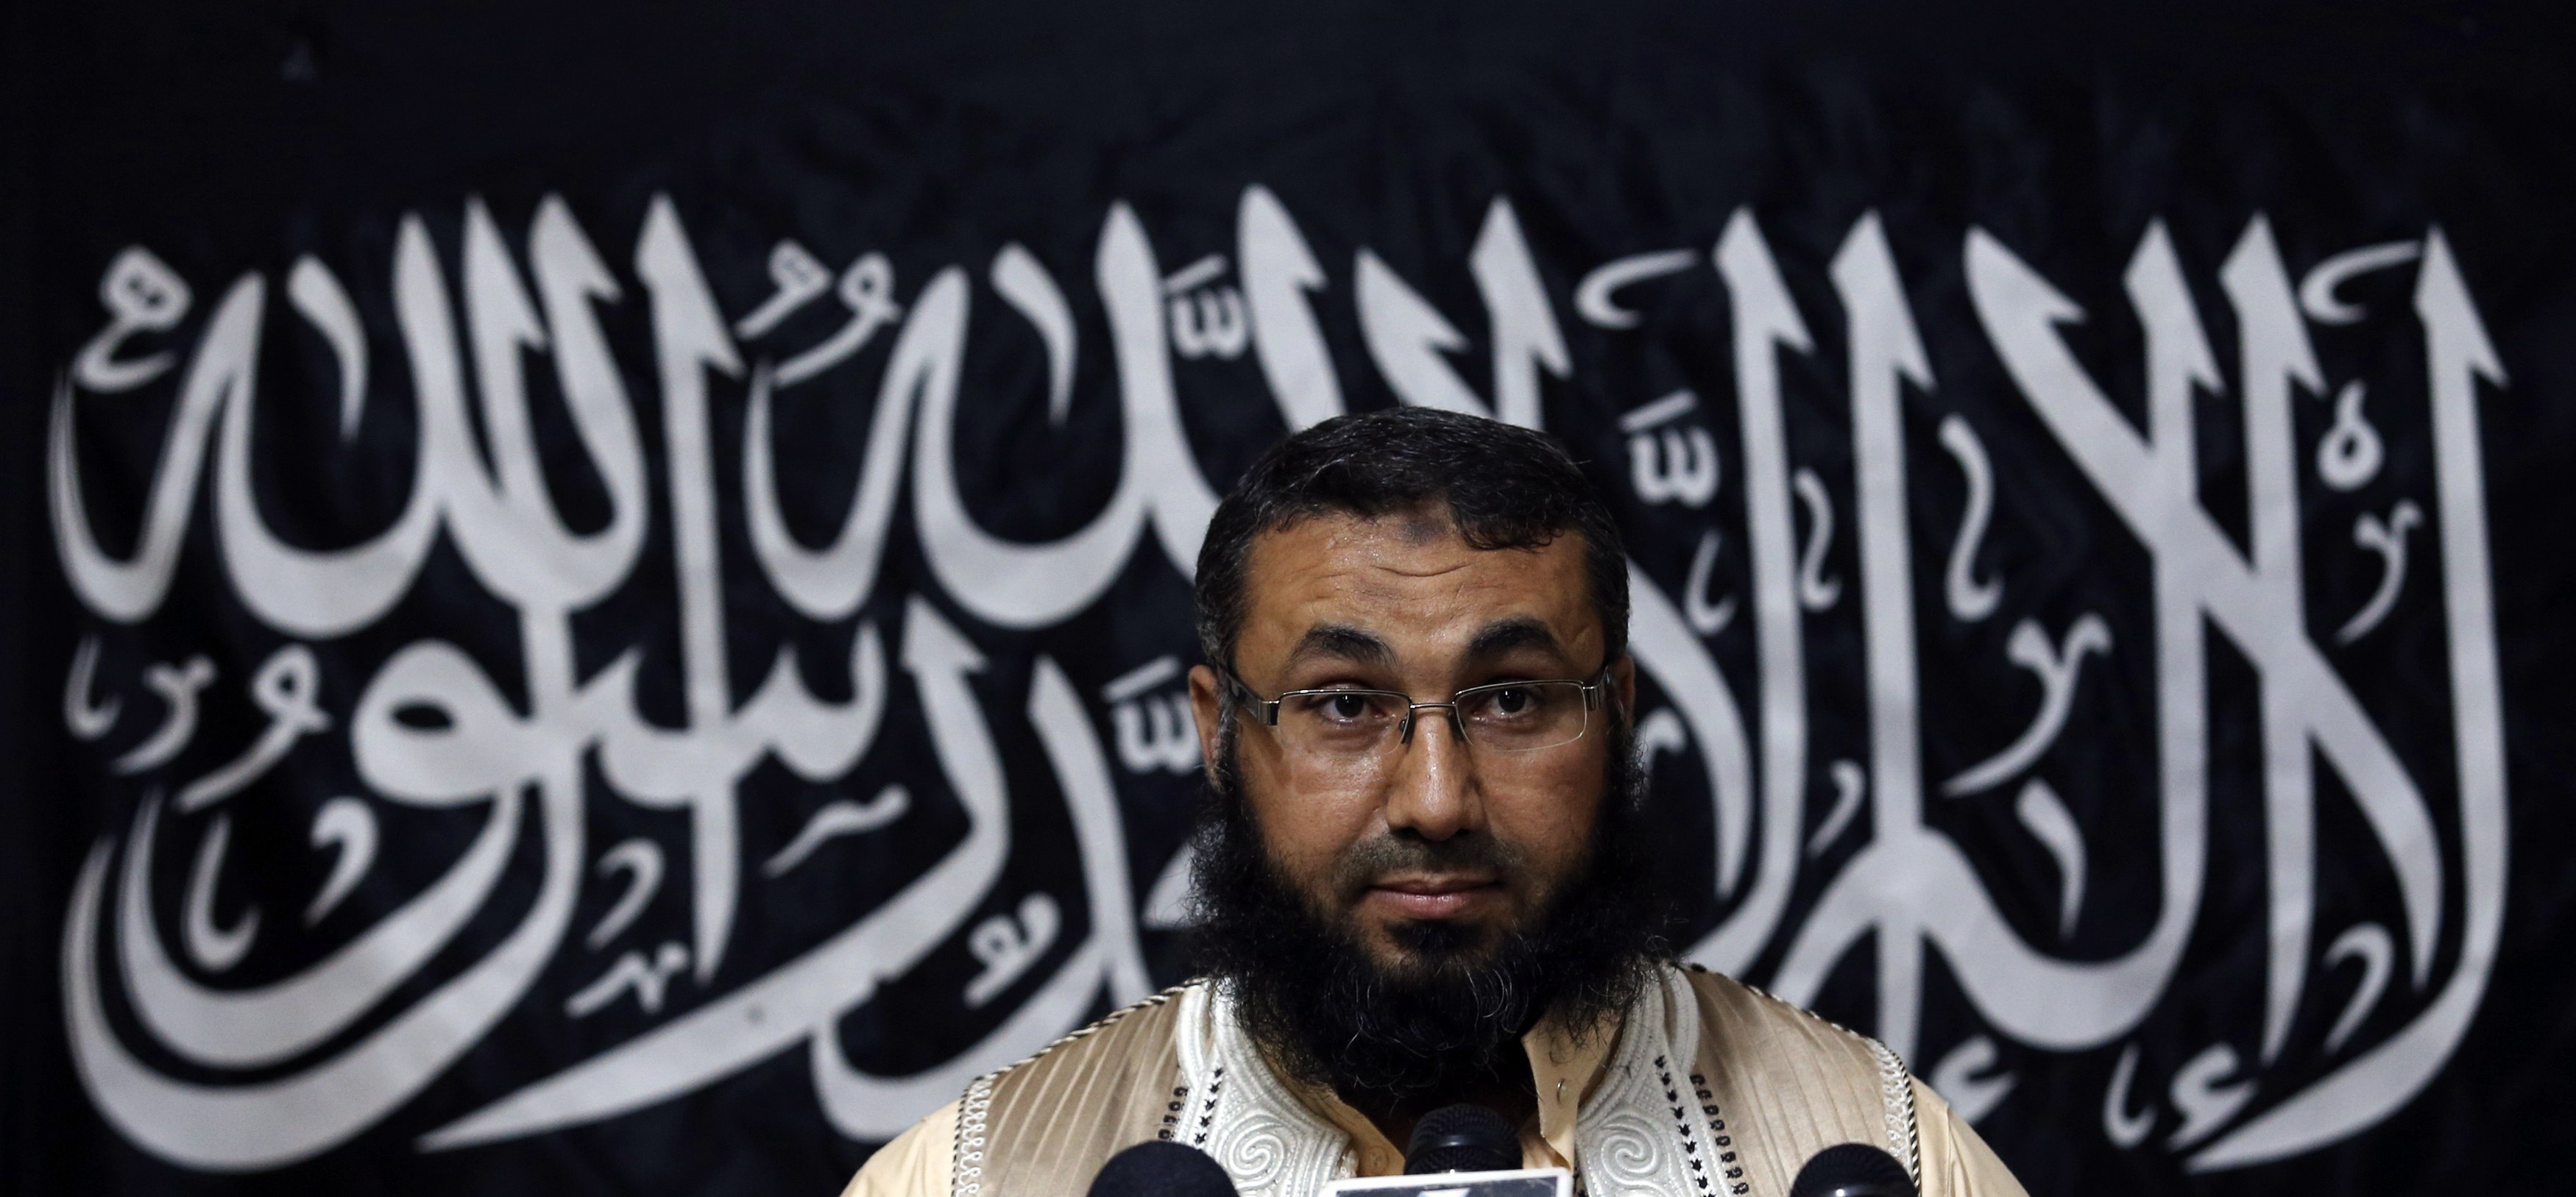 Mohamed Zahawi, head of the Benghazi brigade of Ansar al-Sharia, delivers a statement in Benghazi